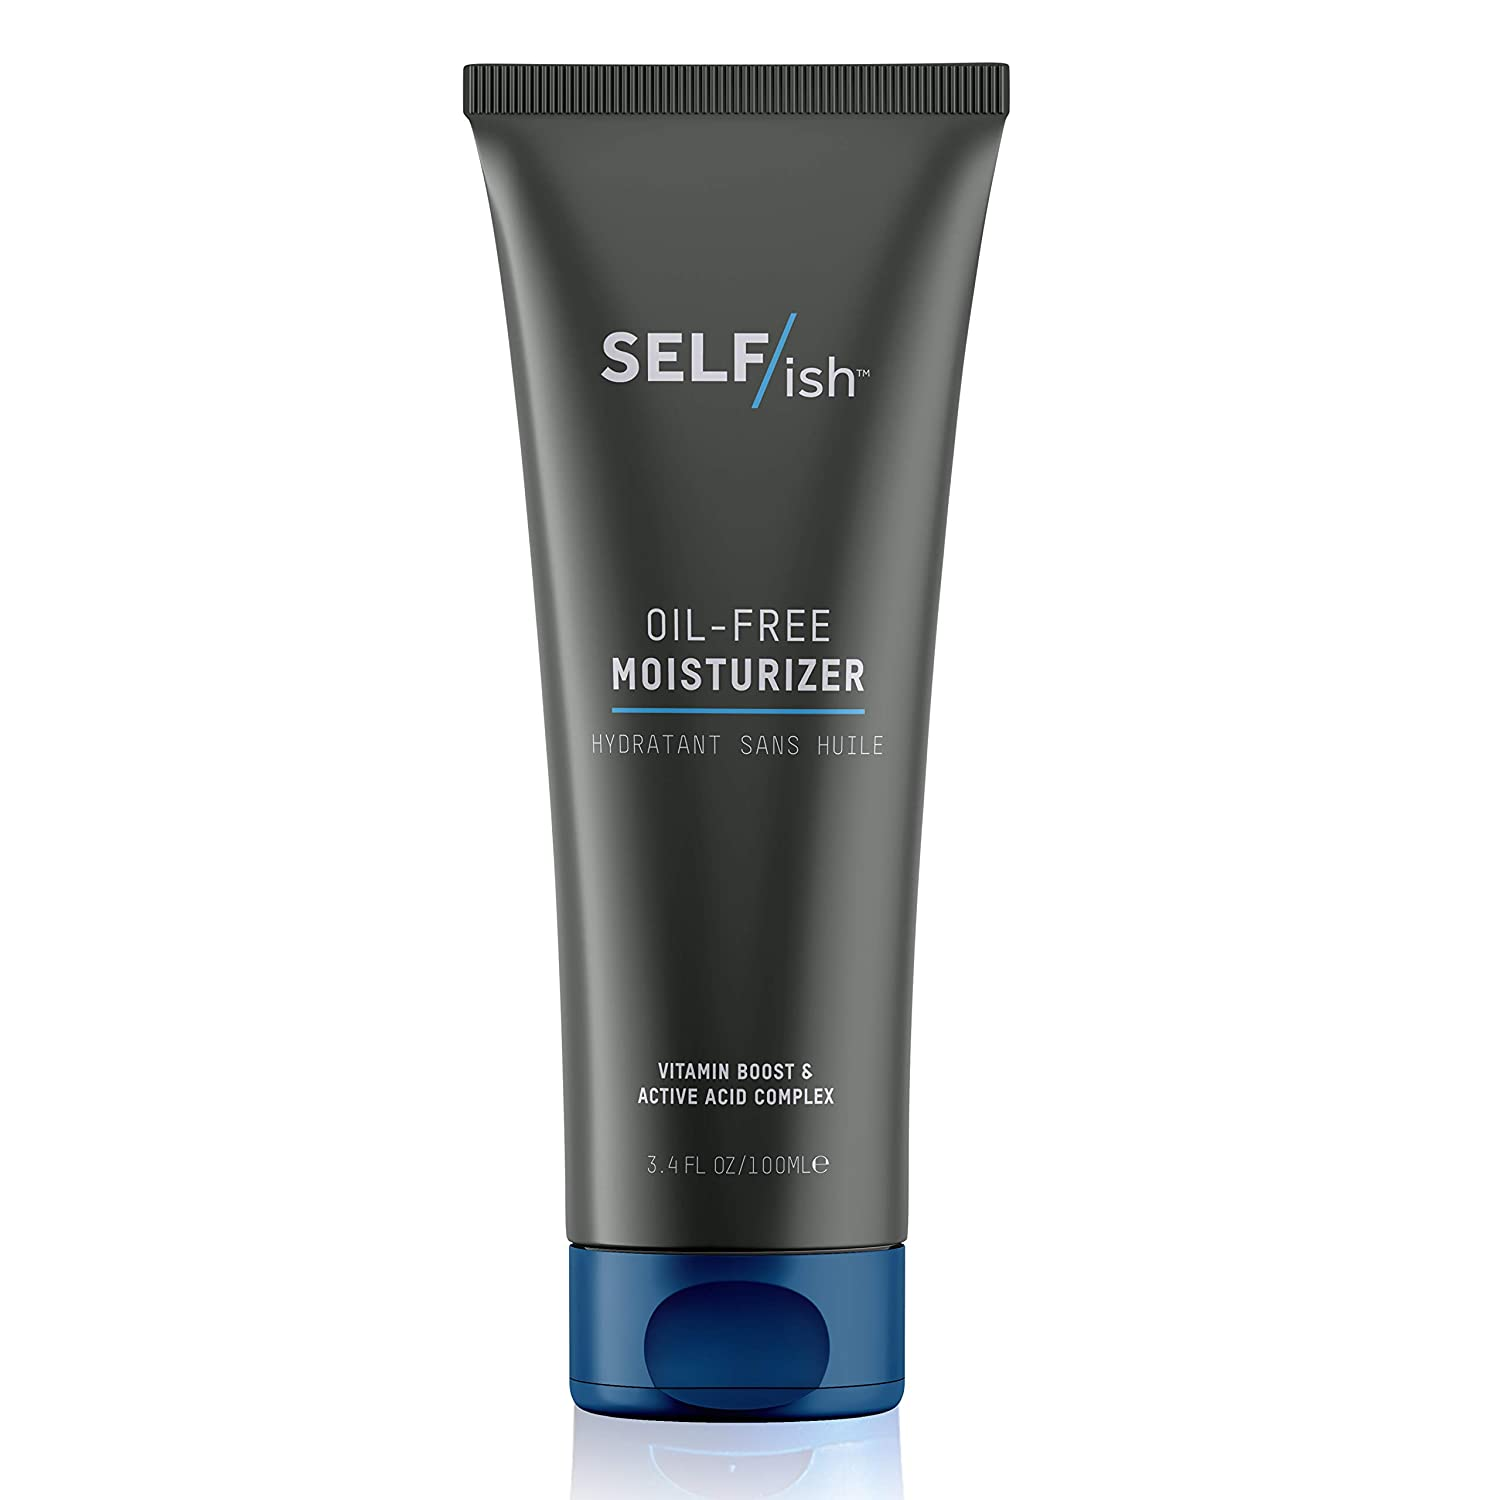 SELF/ish Mens Face Lotion | Oil-free Facial Moisturizer Made for Men | Anti-Aging | Quick-absorbing Lightweight Cream | Natural Ingredients | 3.4fl oz